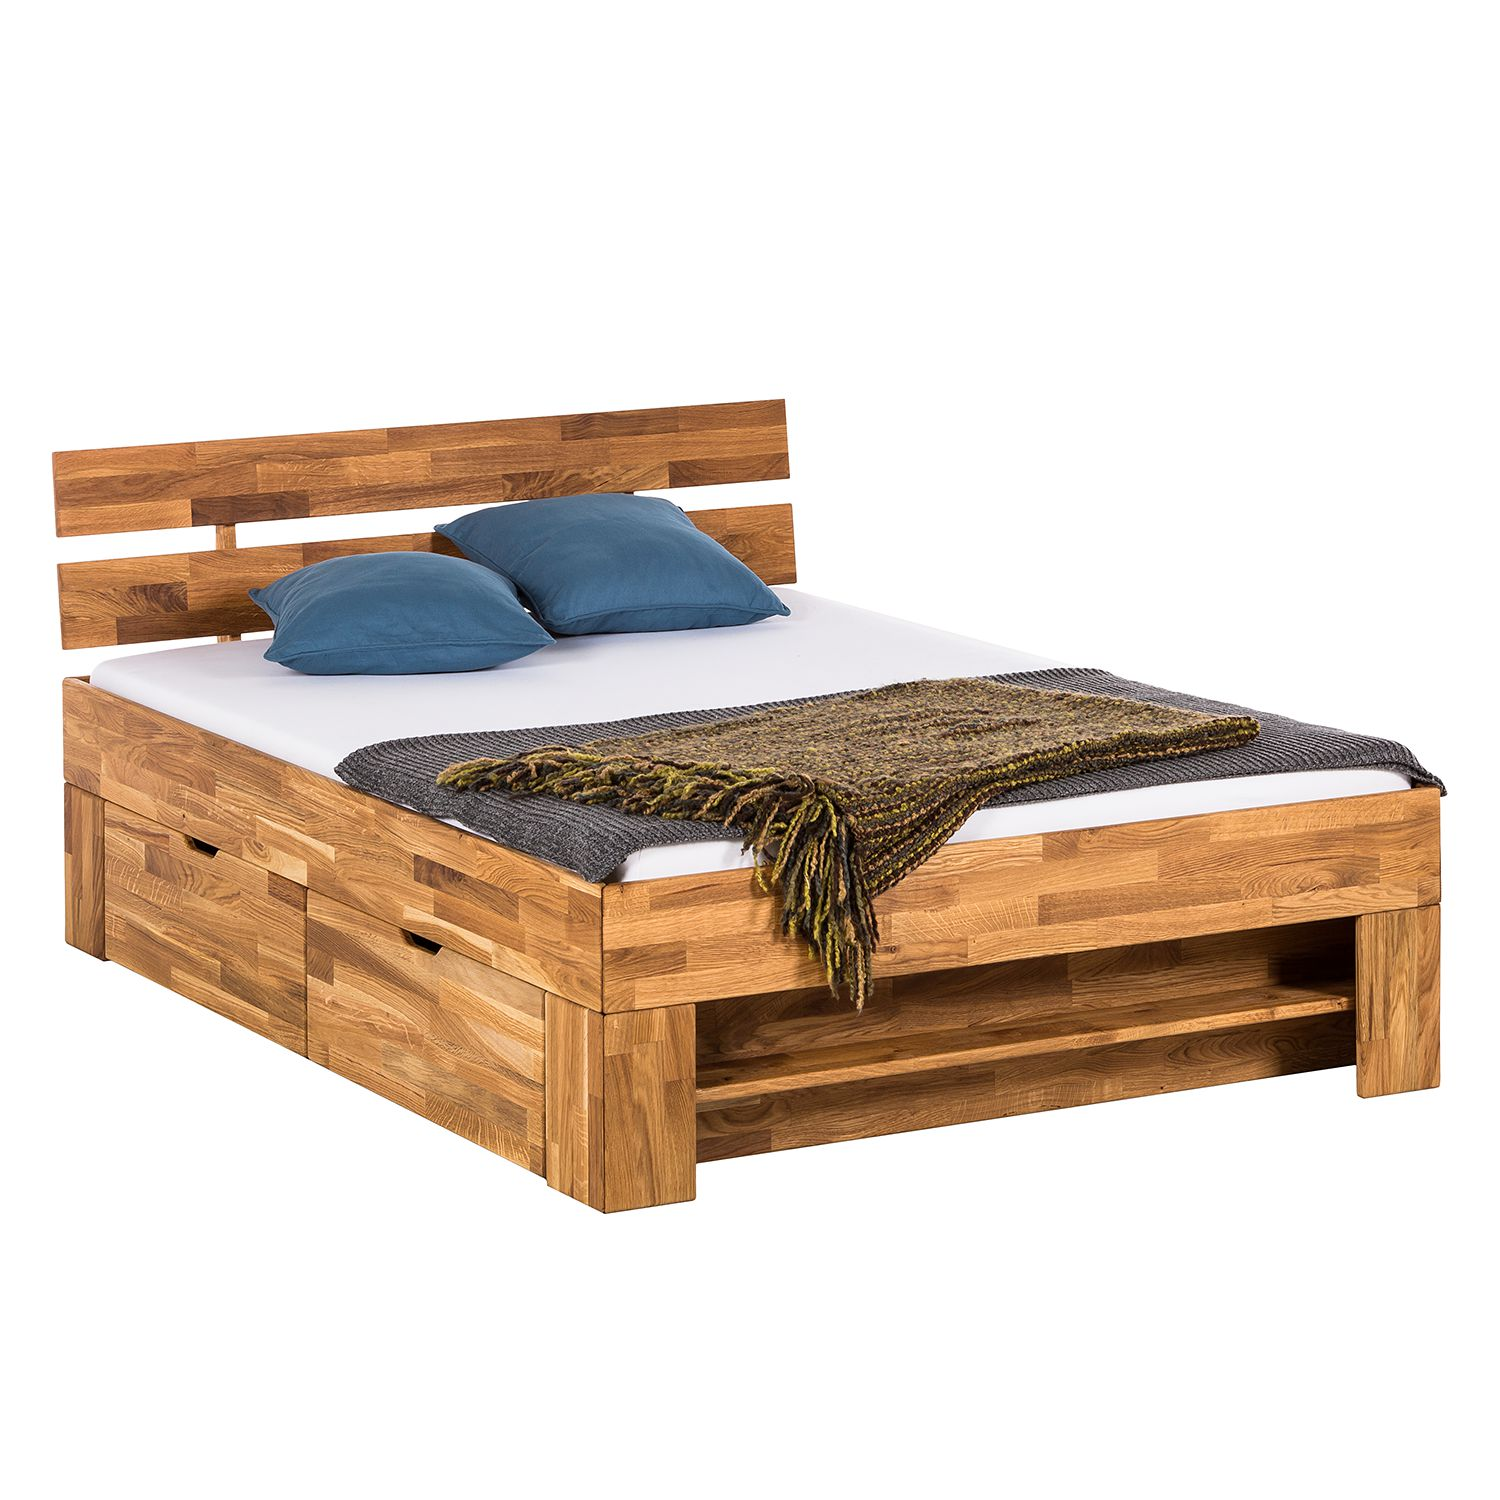 lit en bois massif eoswood avec tiroirs ch ne massif 140 x 200cm ch ne ars natura par. Black Bedroom Furniture Sets. Home Design Ideas